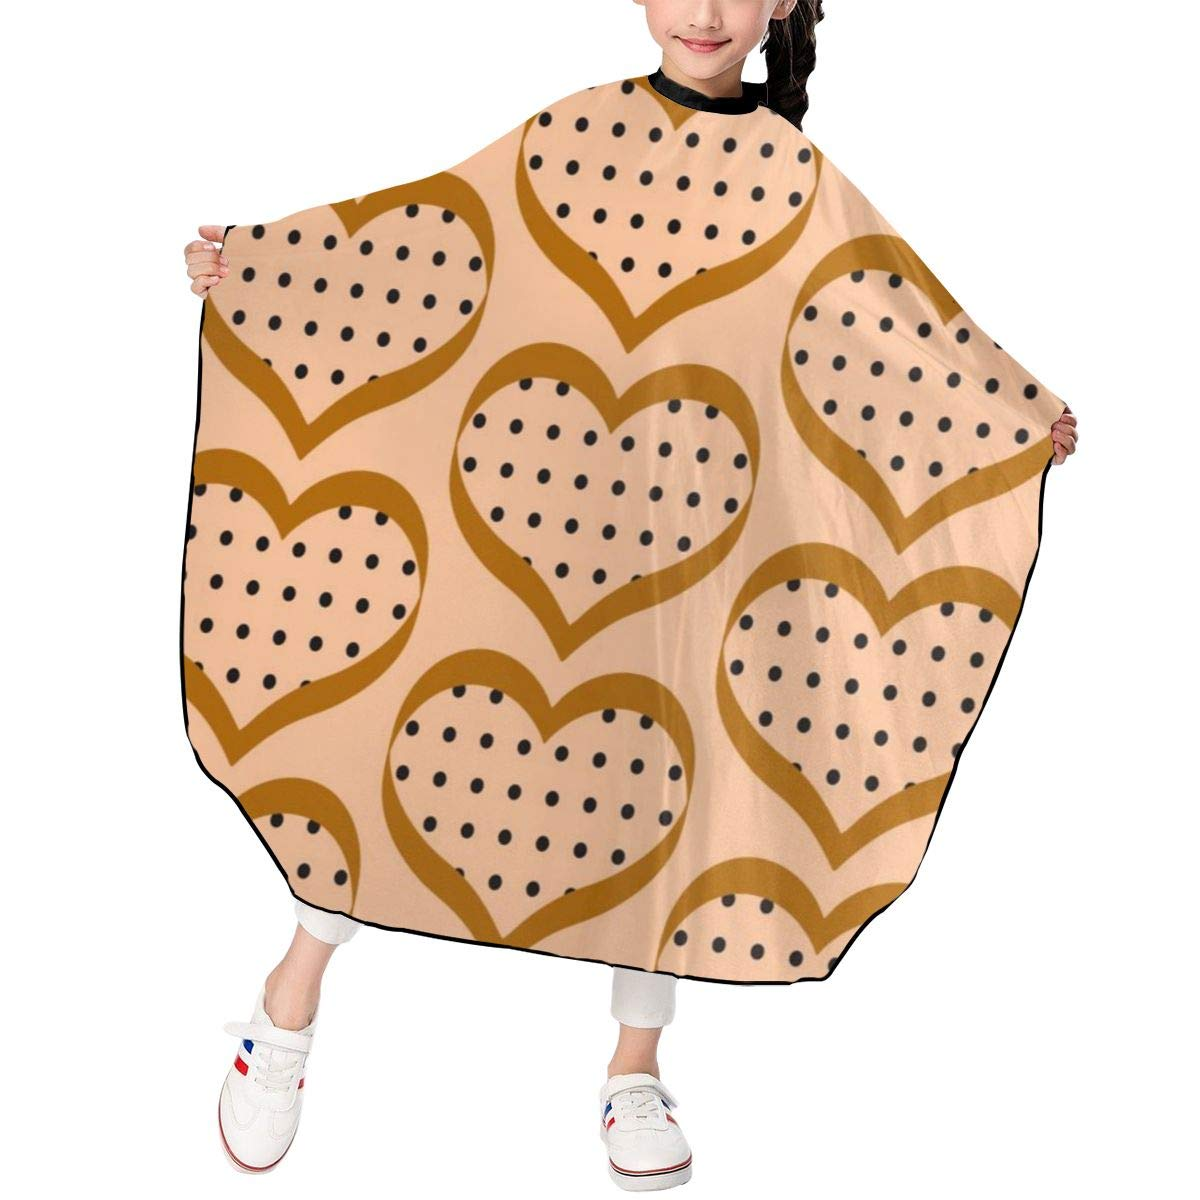 Barber Cape for Kids - Professional Hair Salon Cape with Adjustable Snap Closure Waterproof Hair Cutting Cape for Salon and Home 47 x 39 inches Funny Hearts